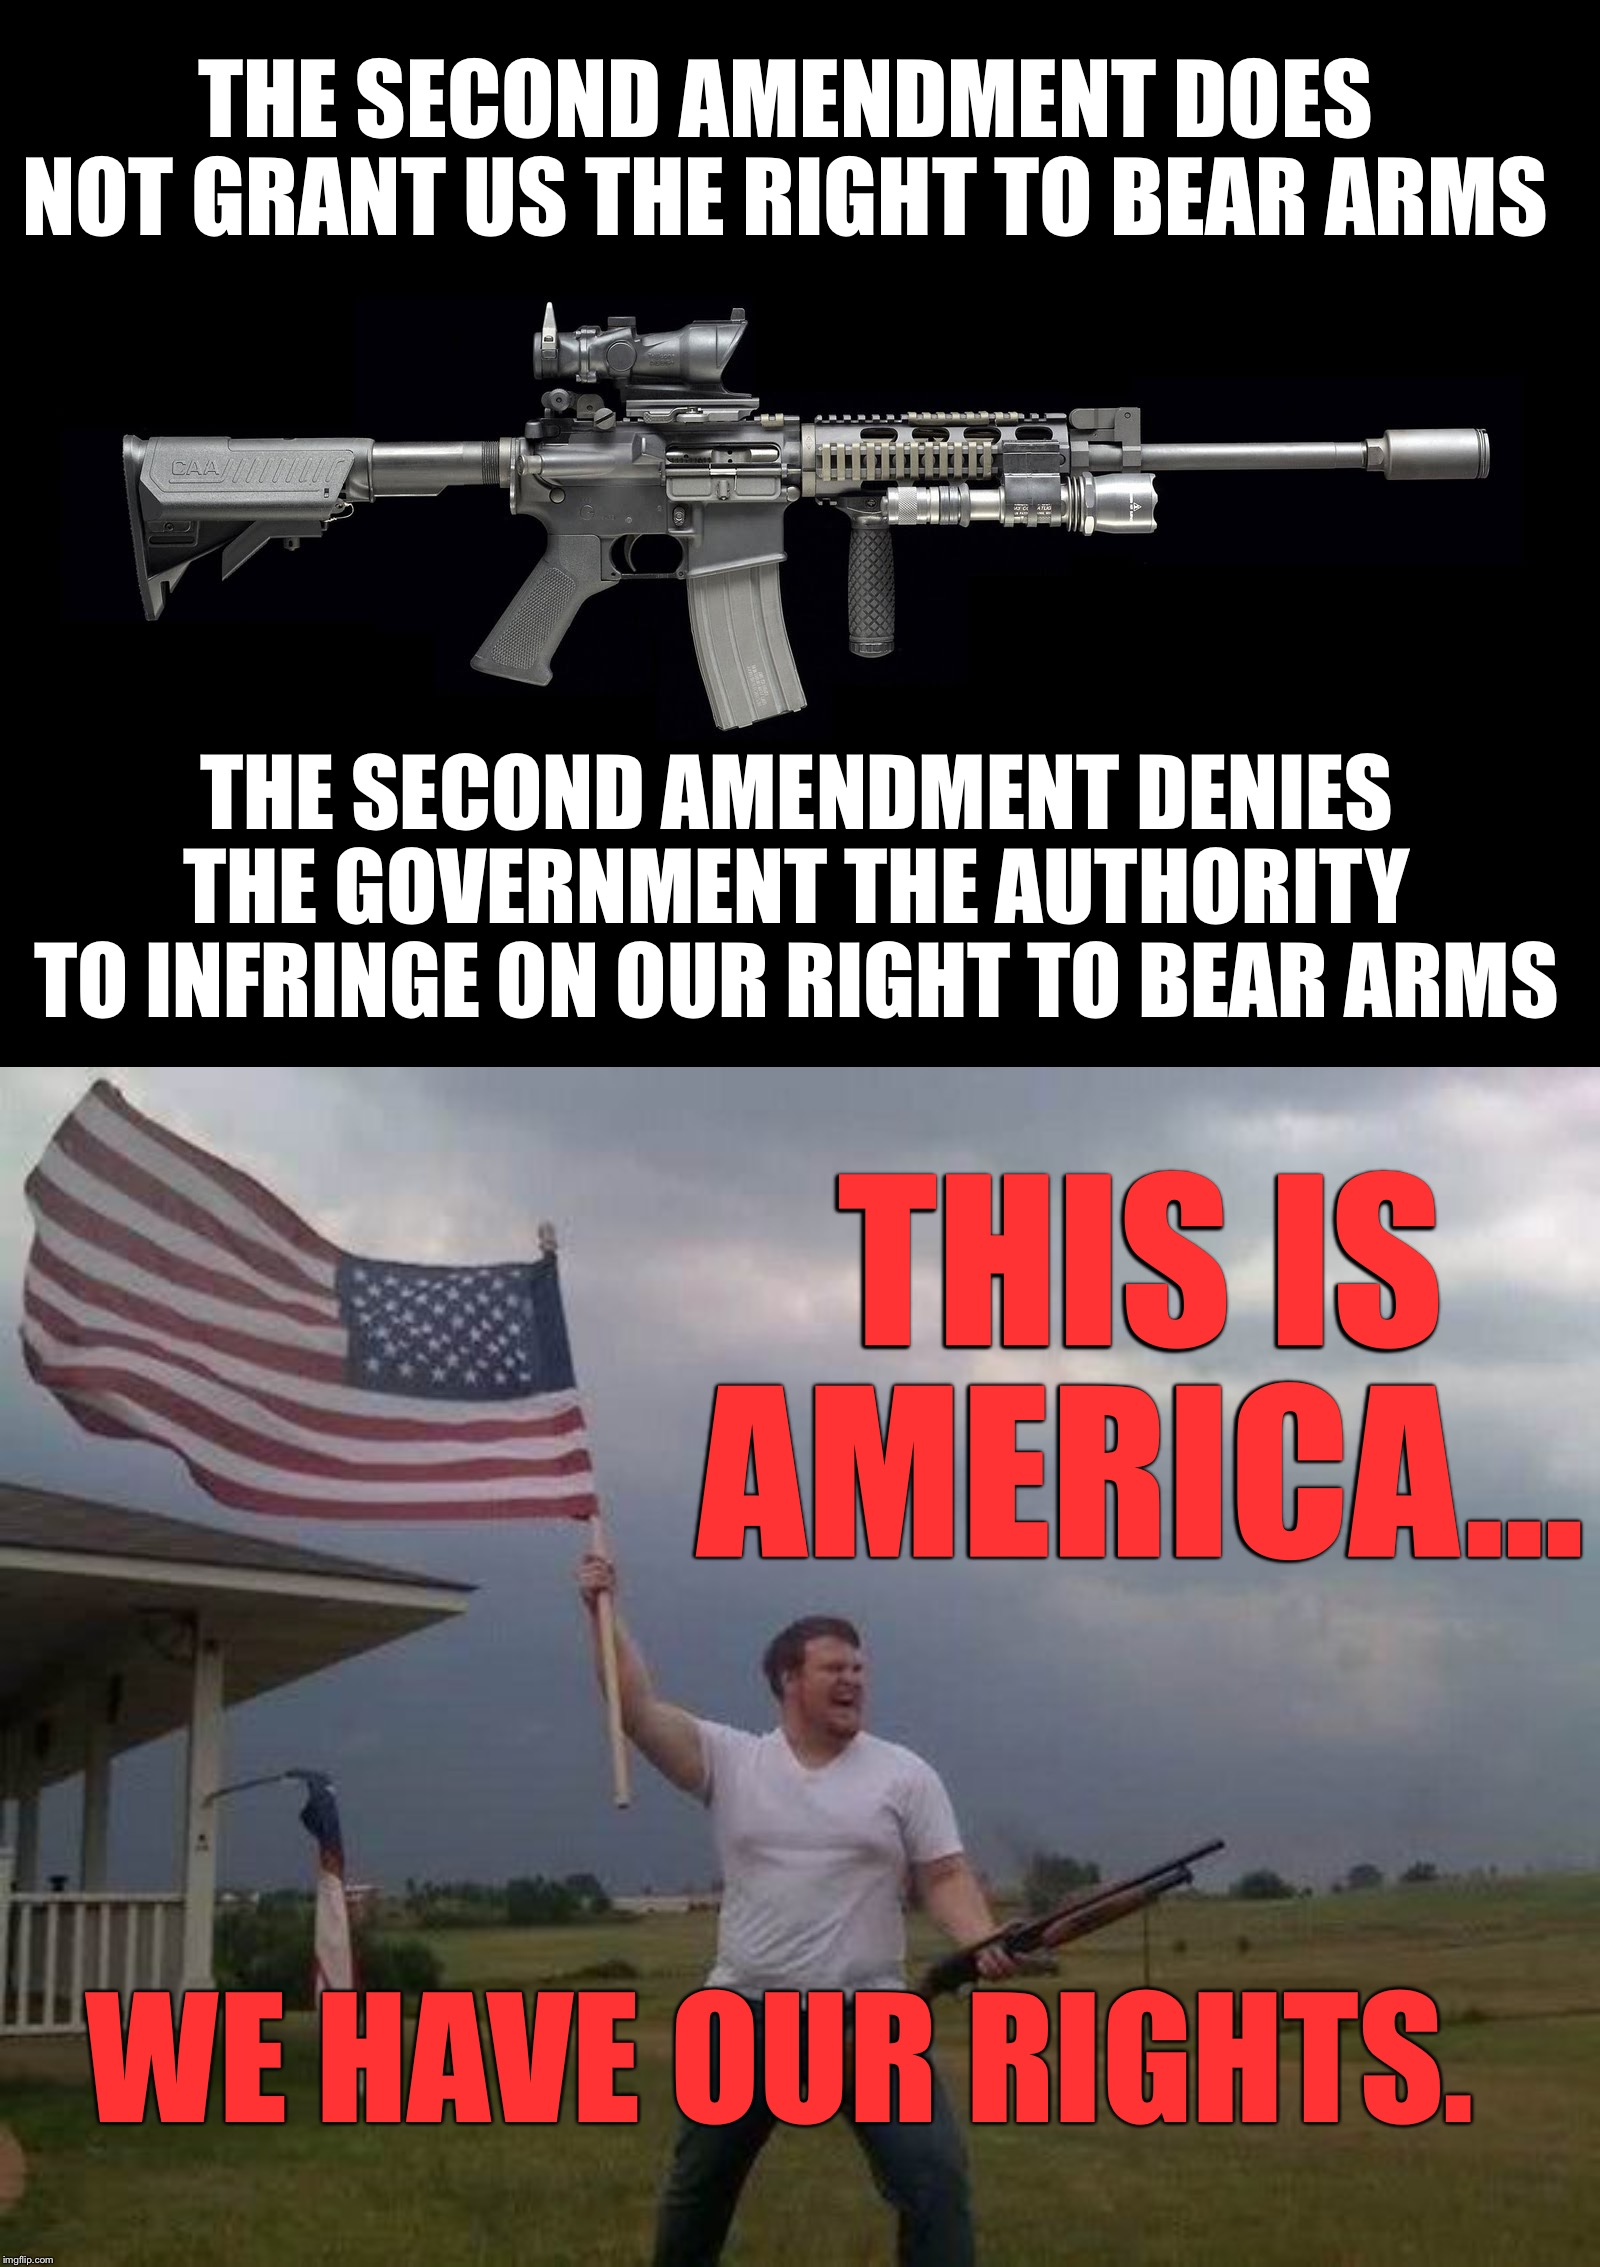 The Second Amendment protects an individual right to possess a firearm unconnected with service in a militia. | THE SECOND AMENDMENT DOES NOT GRANT US THE RIGHT TO BEAR ARMS THE SECOND AMENDMENT DENIES THE GOVERNMENT THE AUTHORITY TO INFRINGE ON OUR RI | image tagged in second amendment | made w/ Imgflip meme maker